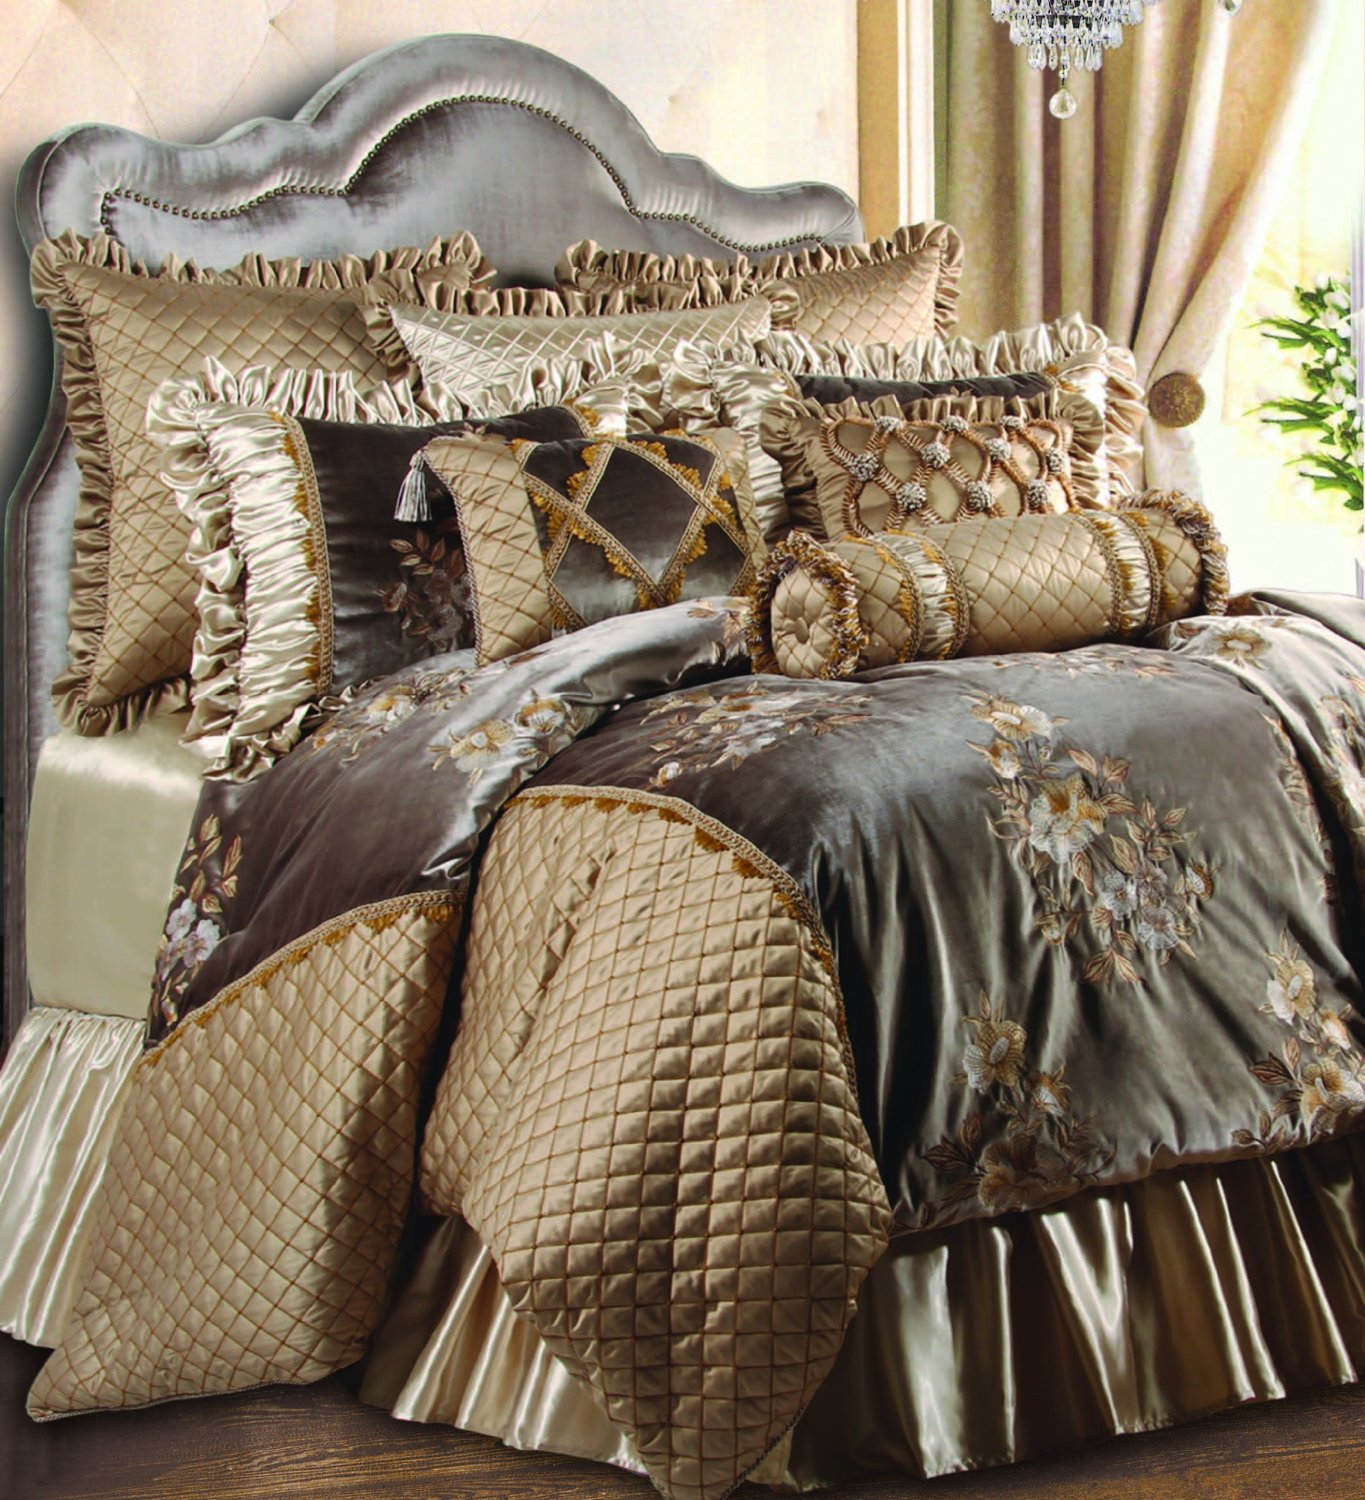 My Luxury Duvet Cover  Where Can I Find High Quality   Best Duvet ... d5a0ba0b1